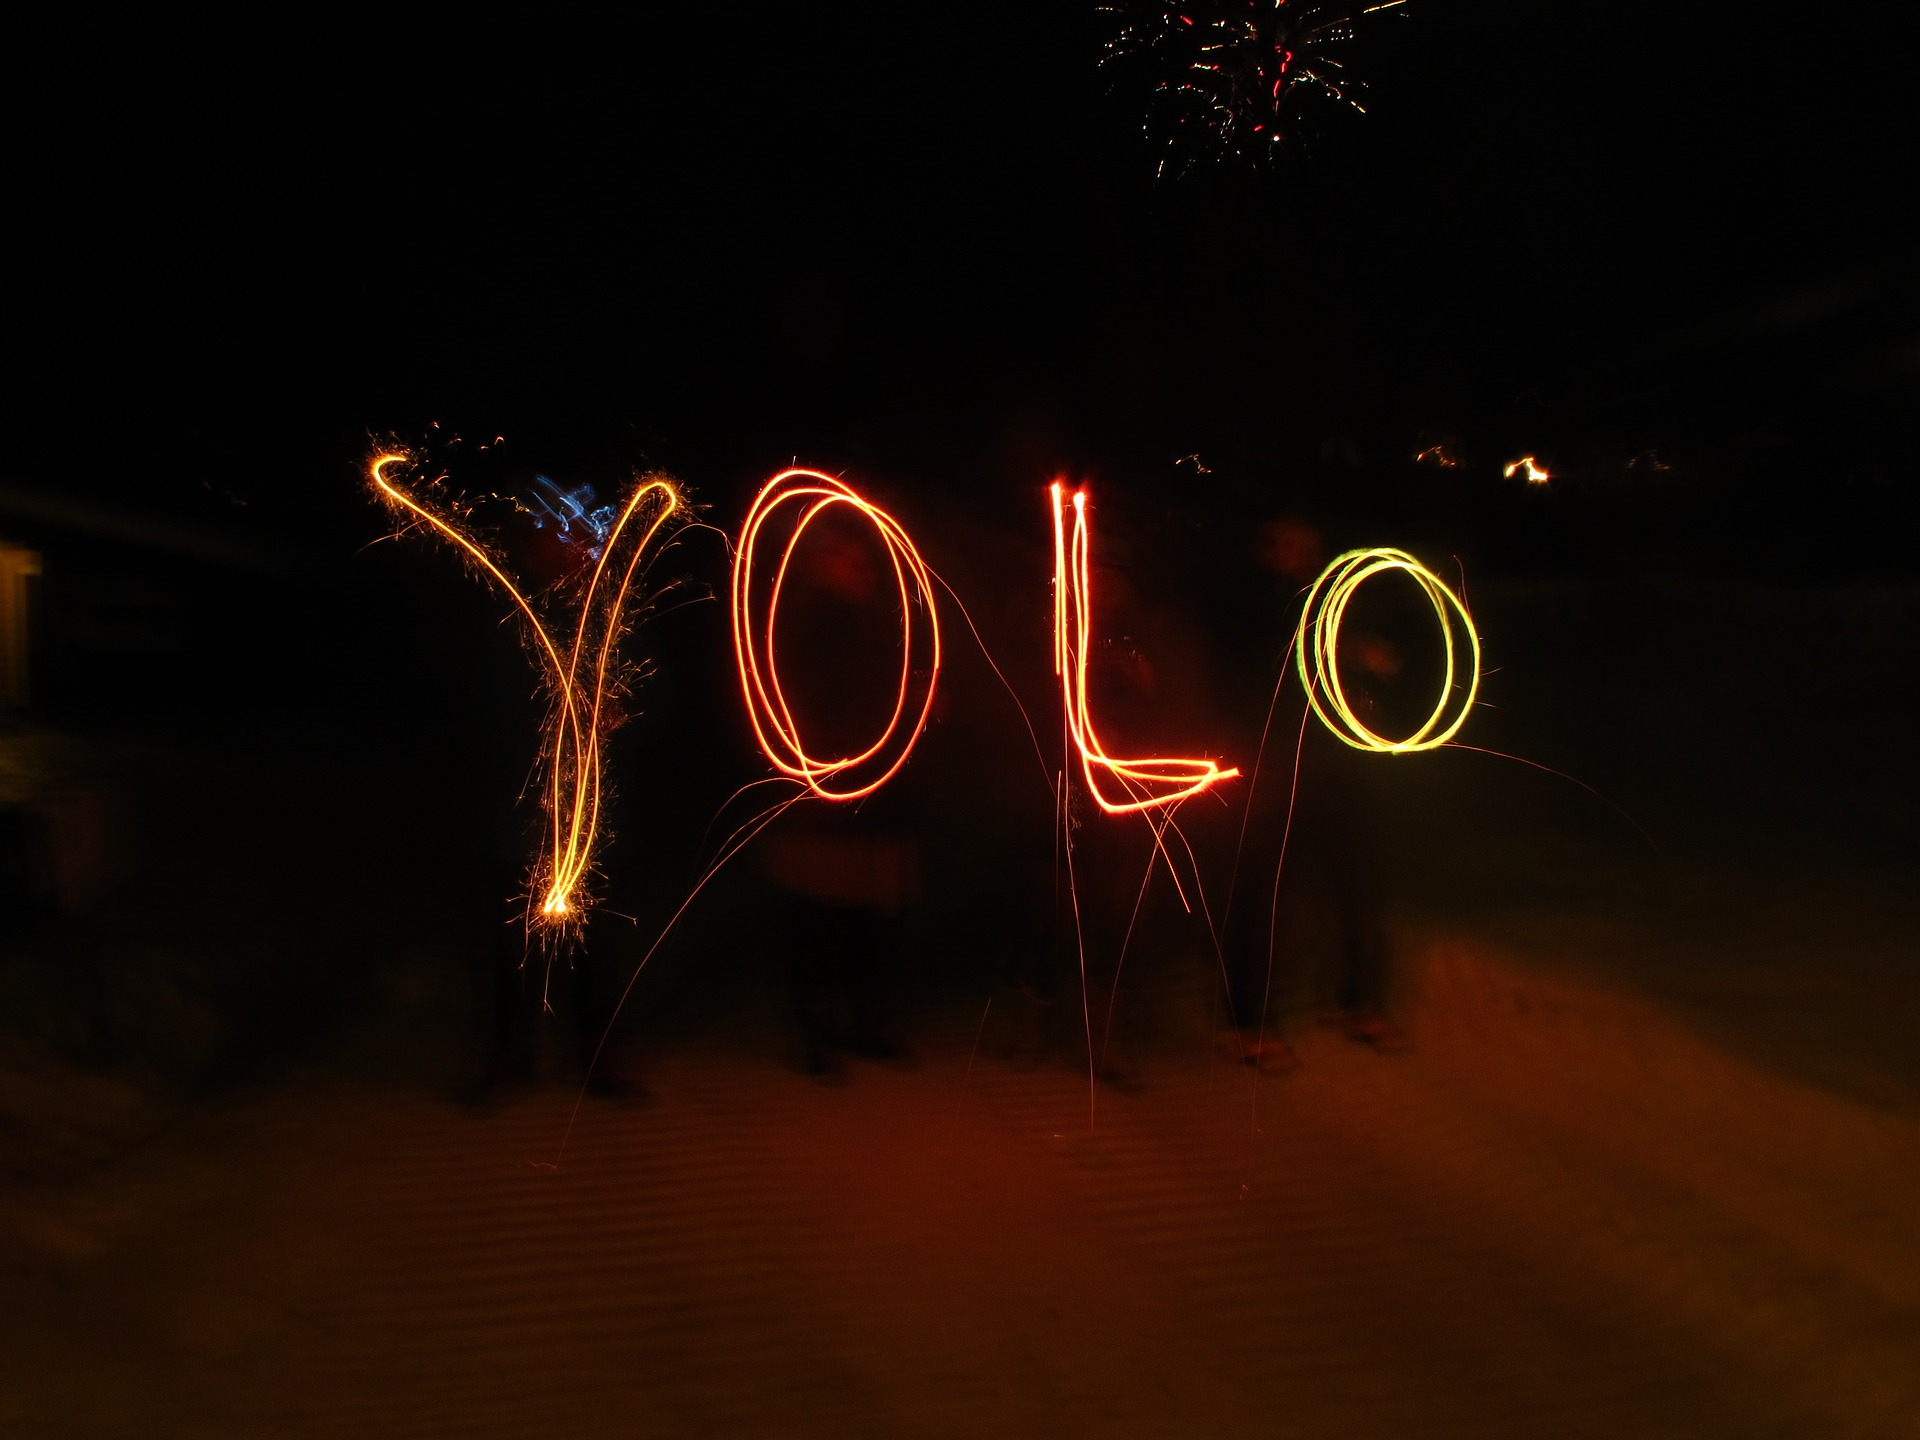 The YOLO Project